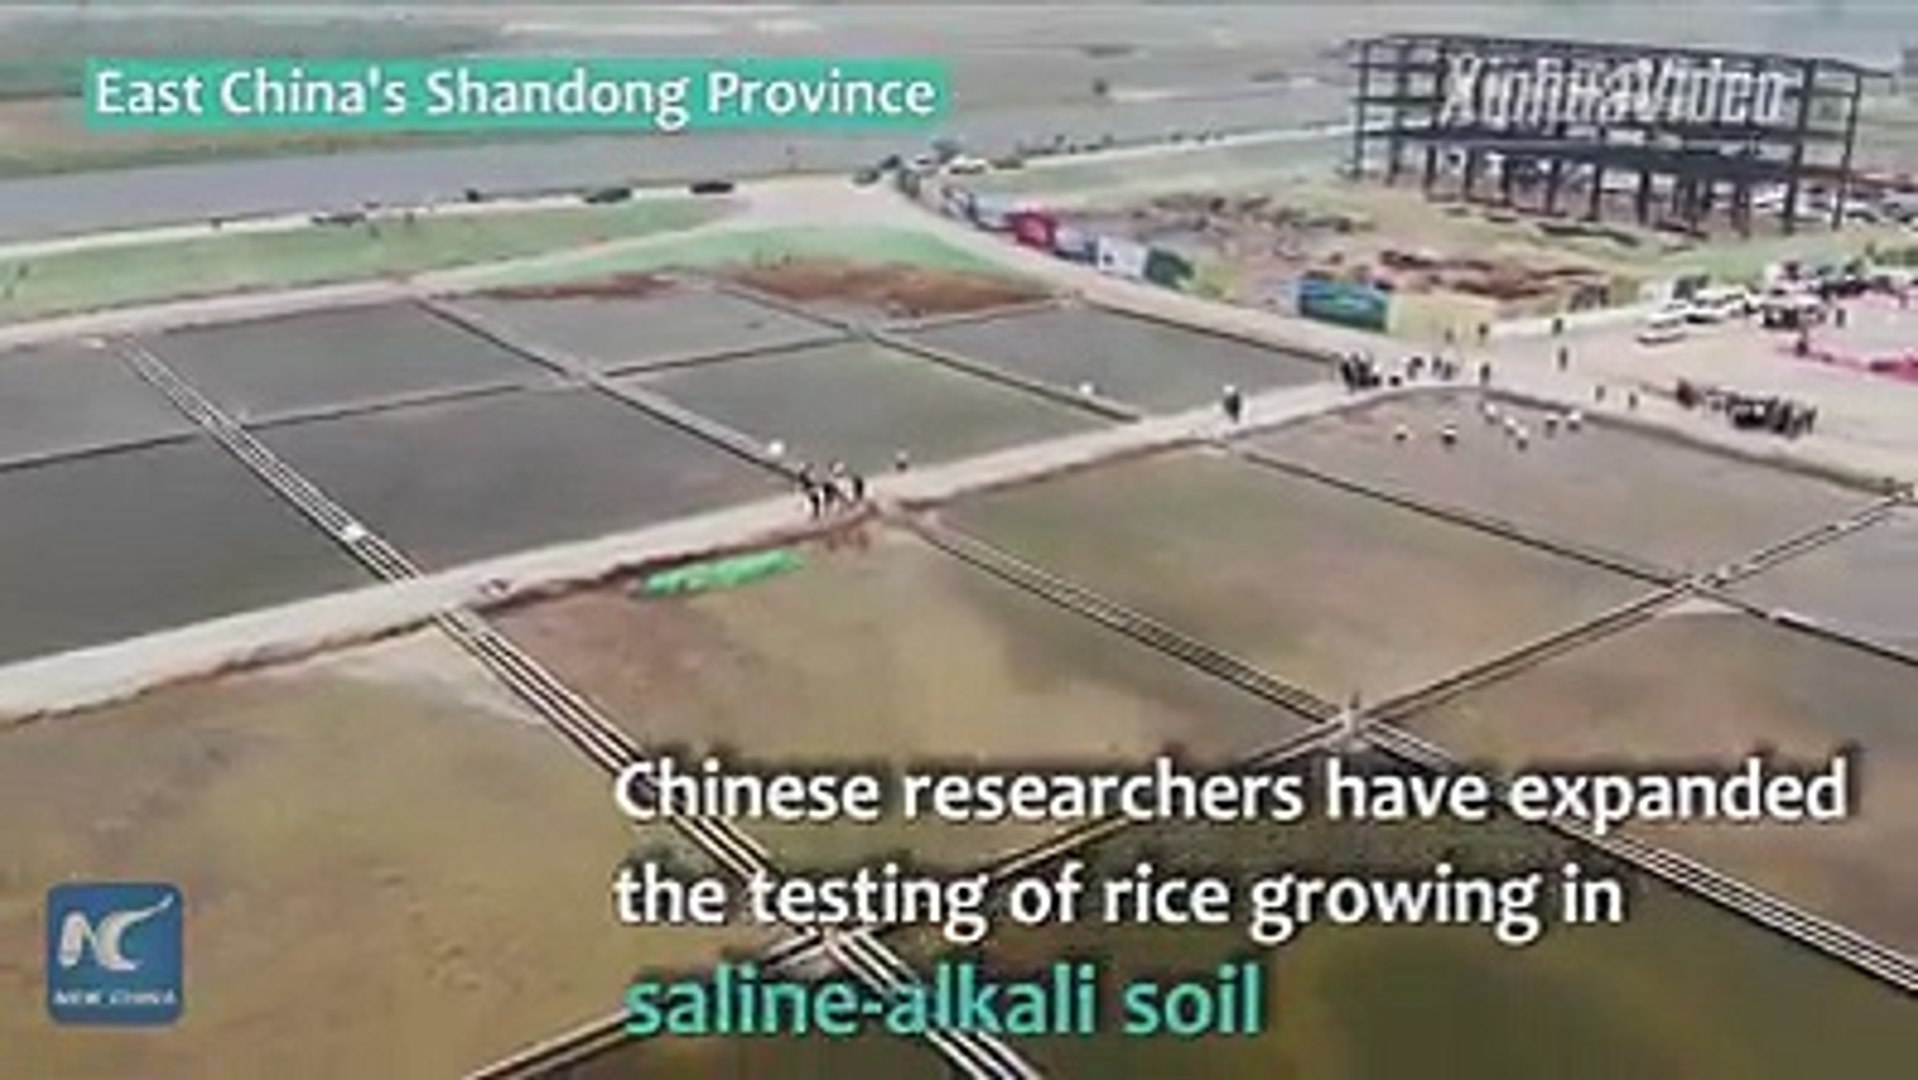 Rice to grow in seawater? Chinese researchers have expanded the testing of rice growing with saline-